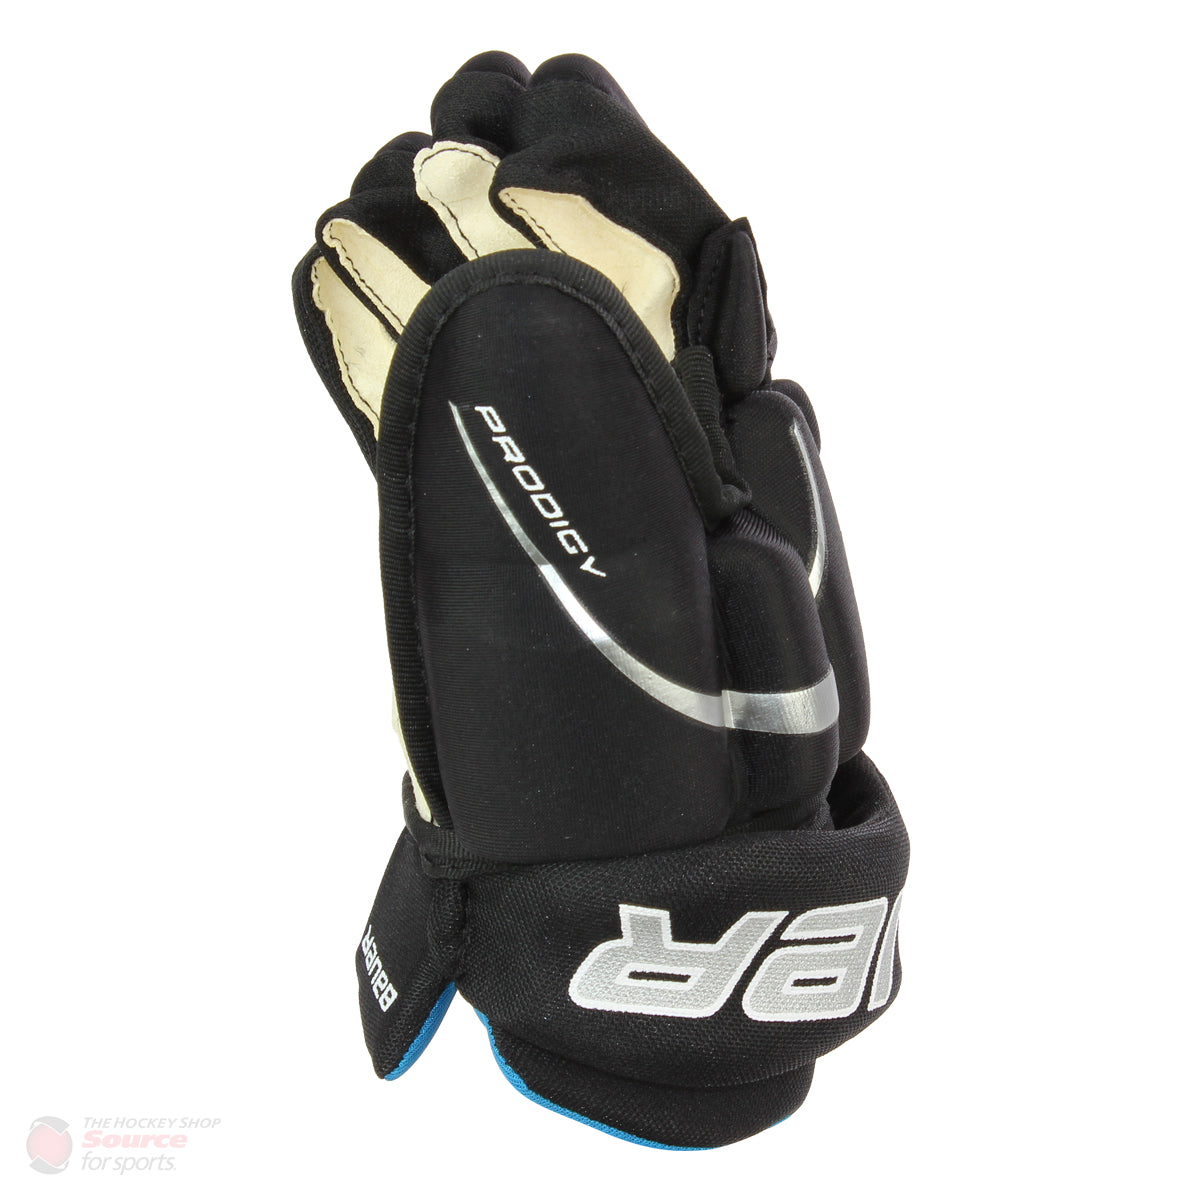 Bauer Prodigy Youth Gloves